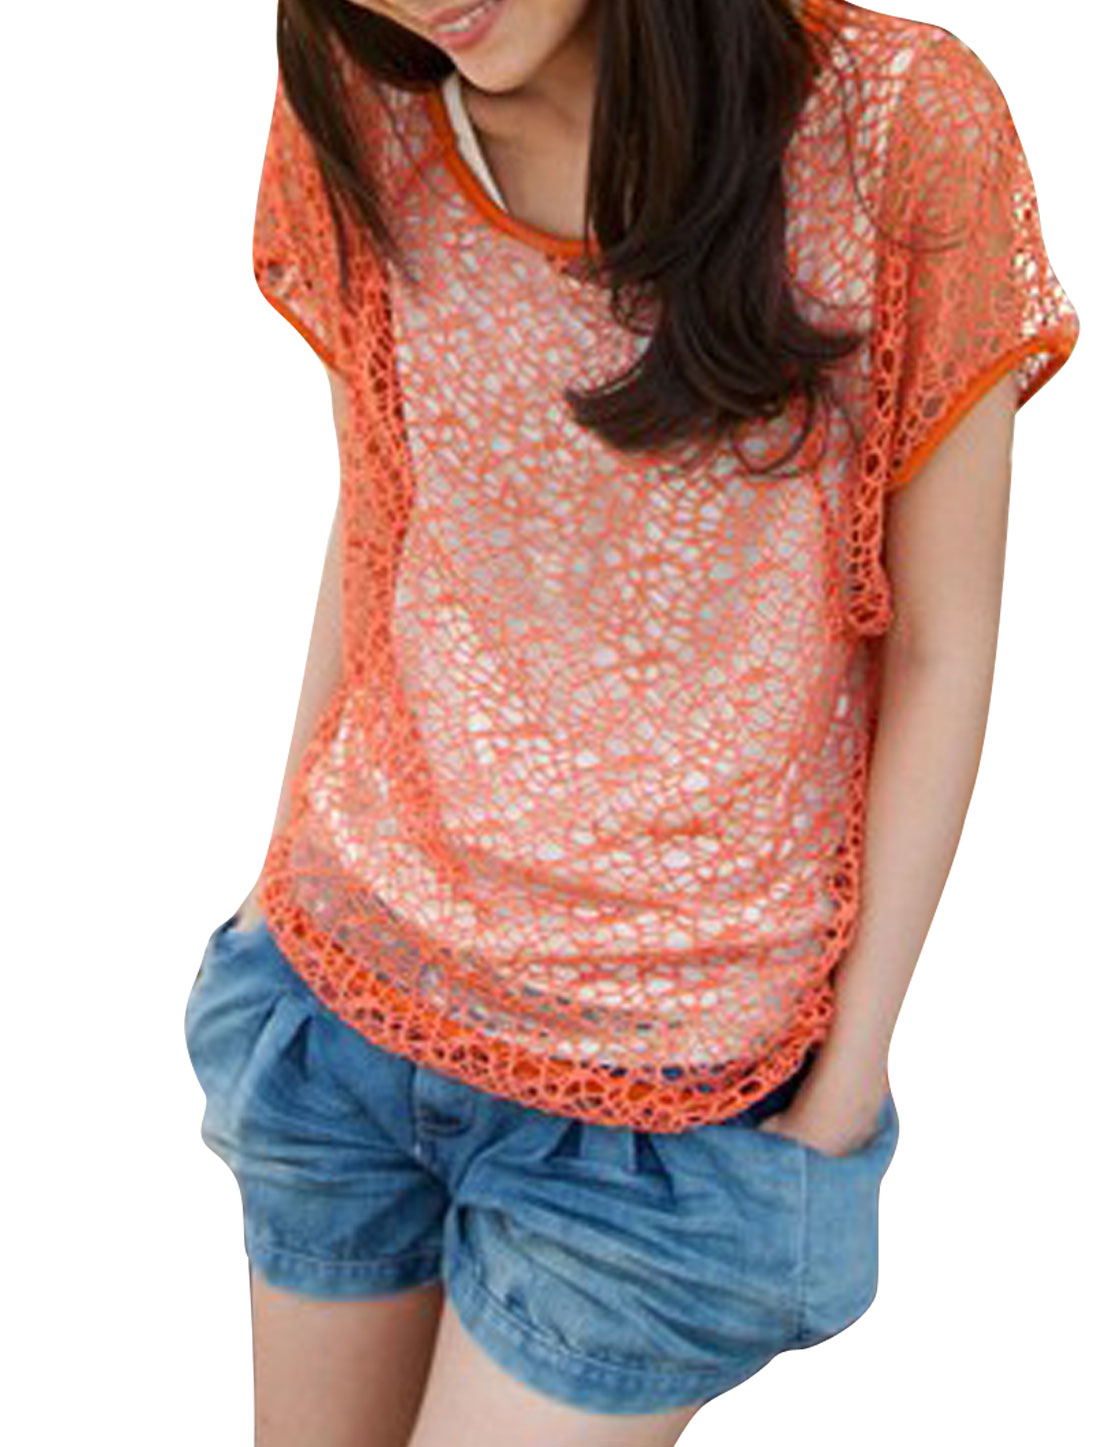 Women-Round-Neck-Lace-Decor-Tank-Top-Smock-Coral-Red-XS